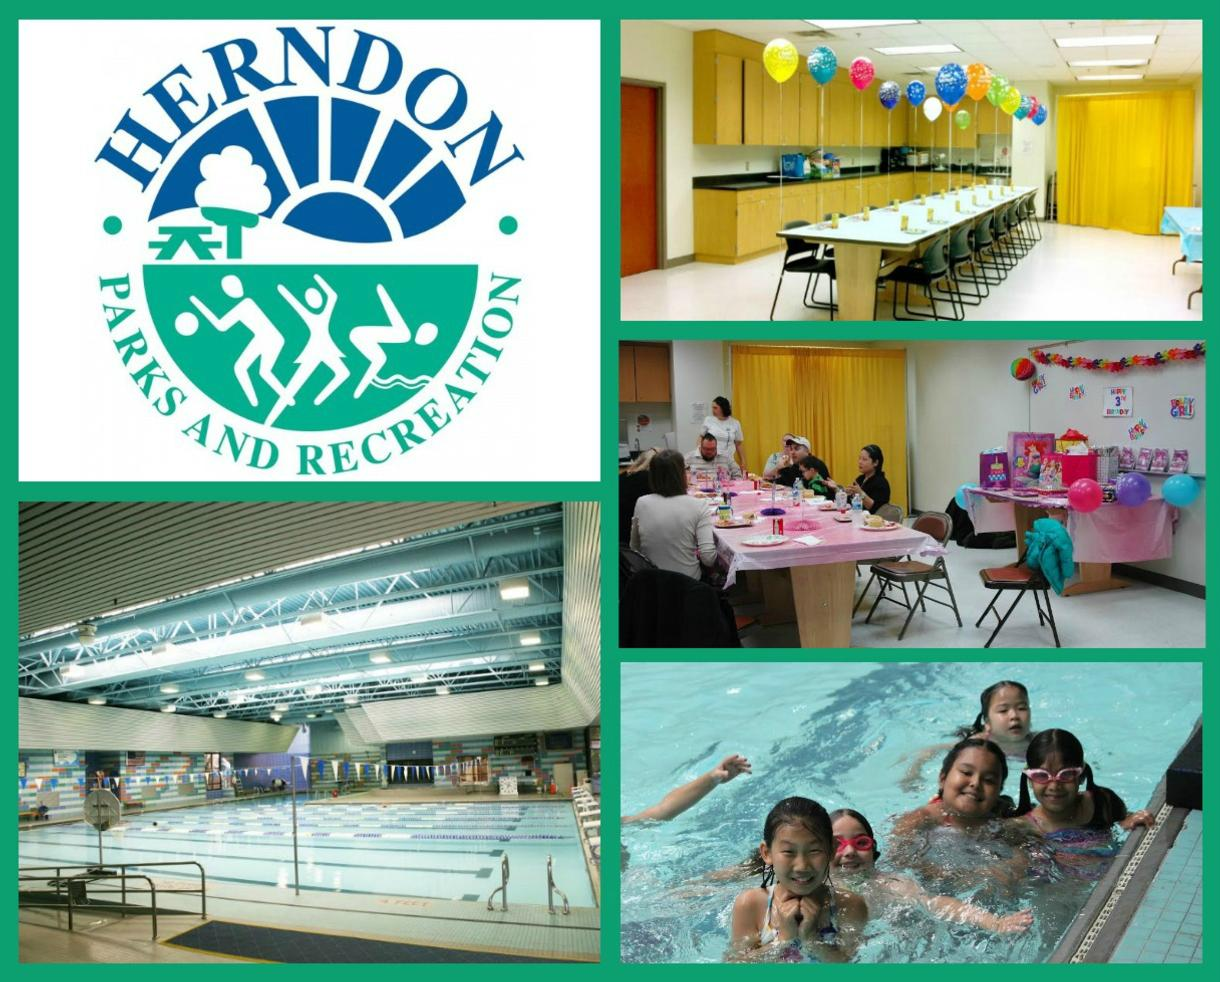 $4 for Indoor Pool Admission OR $99 POOL PARTY!! - Herndon Community Center (Up to 48% Off)